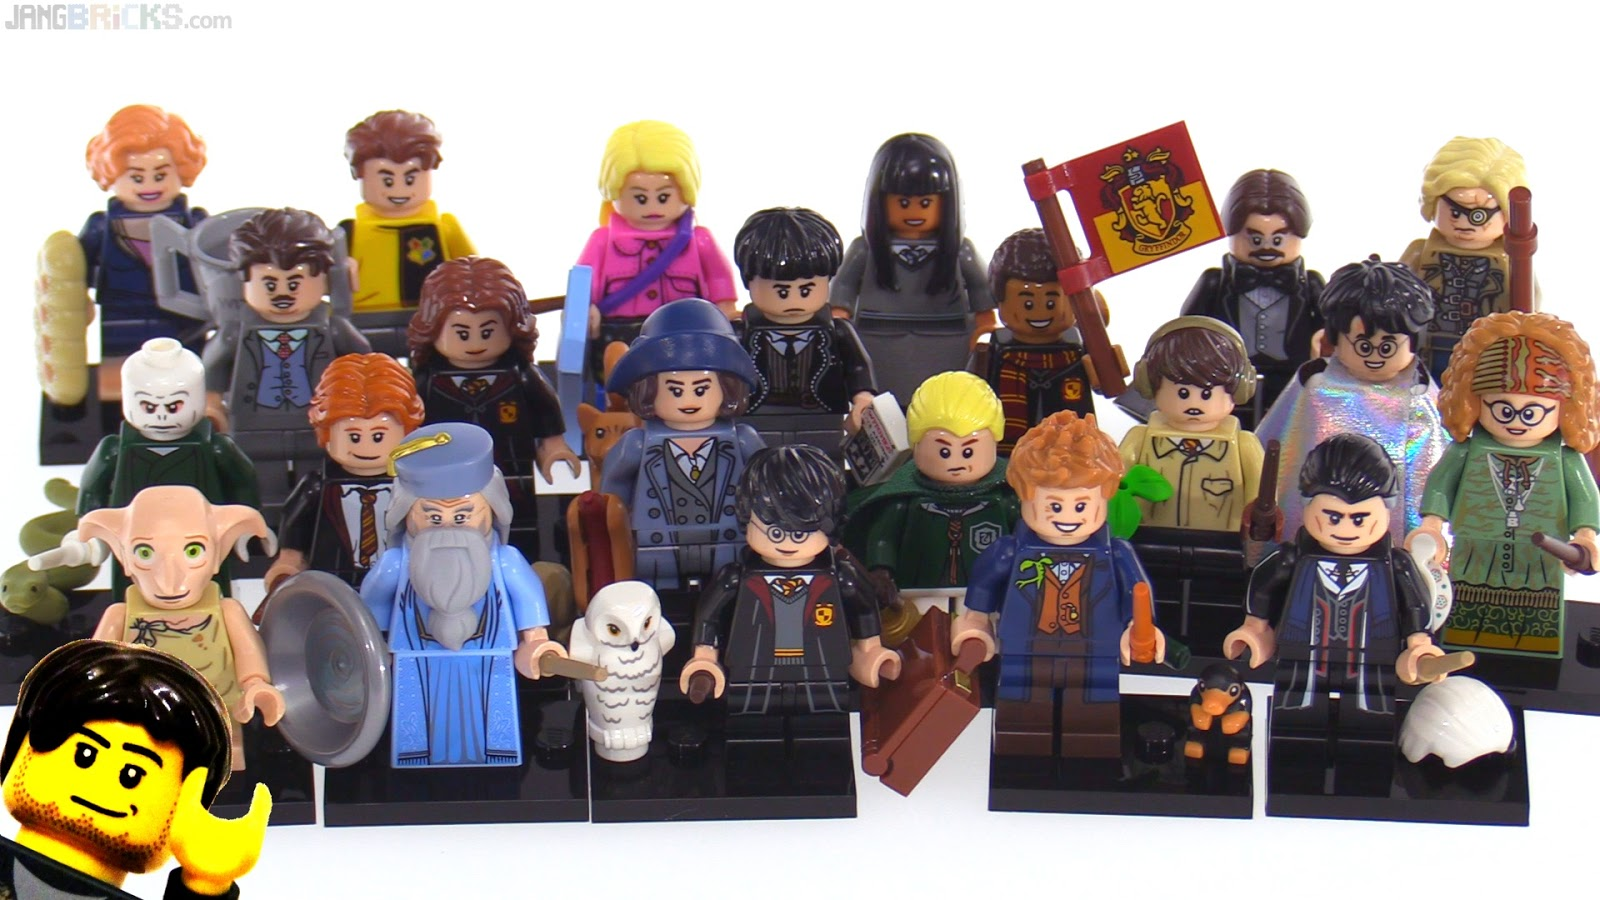 LEGO Harry Potter   Fantastic Beasts collectible minifigure series     LEGO Harry Potter   Fantastic Beasts collectible minifigure series videos